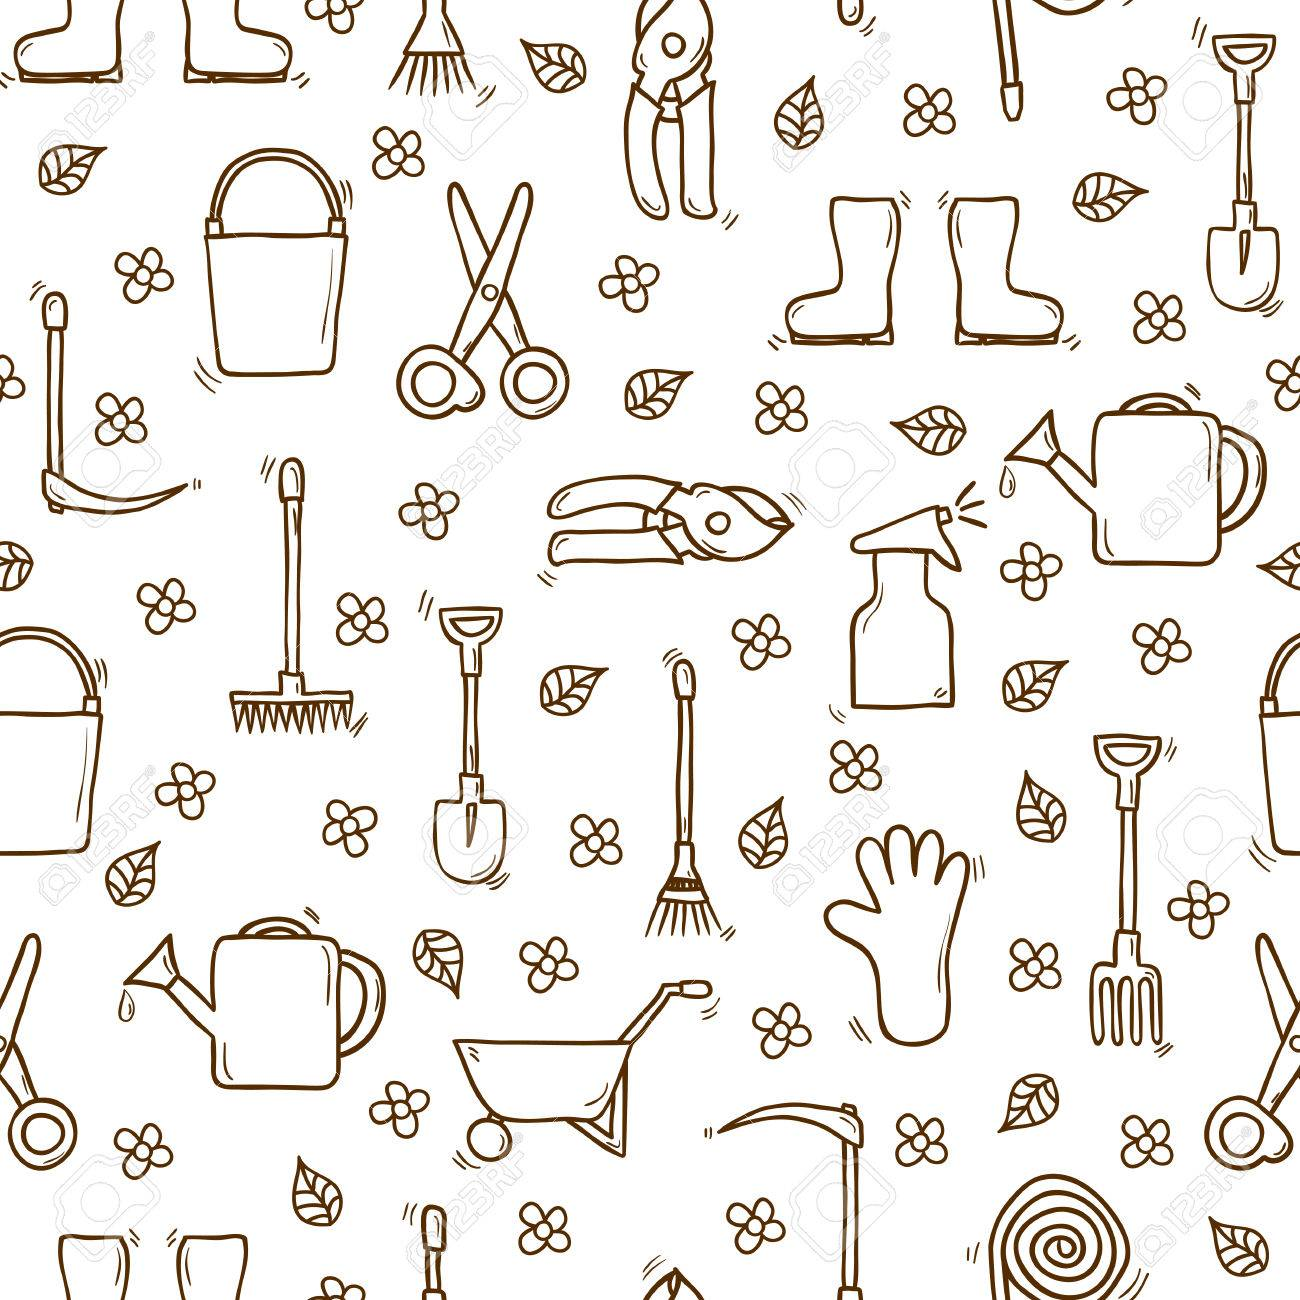 Seamless Backgound With Cartoon Hand Drawn Objects On Garden Theme. Outdoor  Concept With Tools Objects